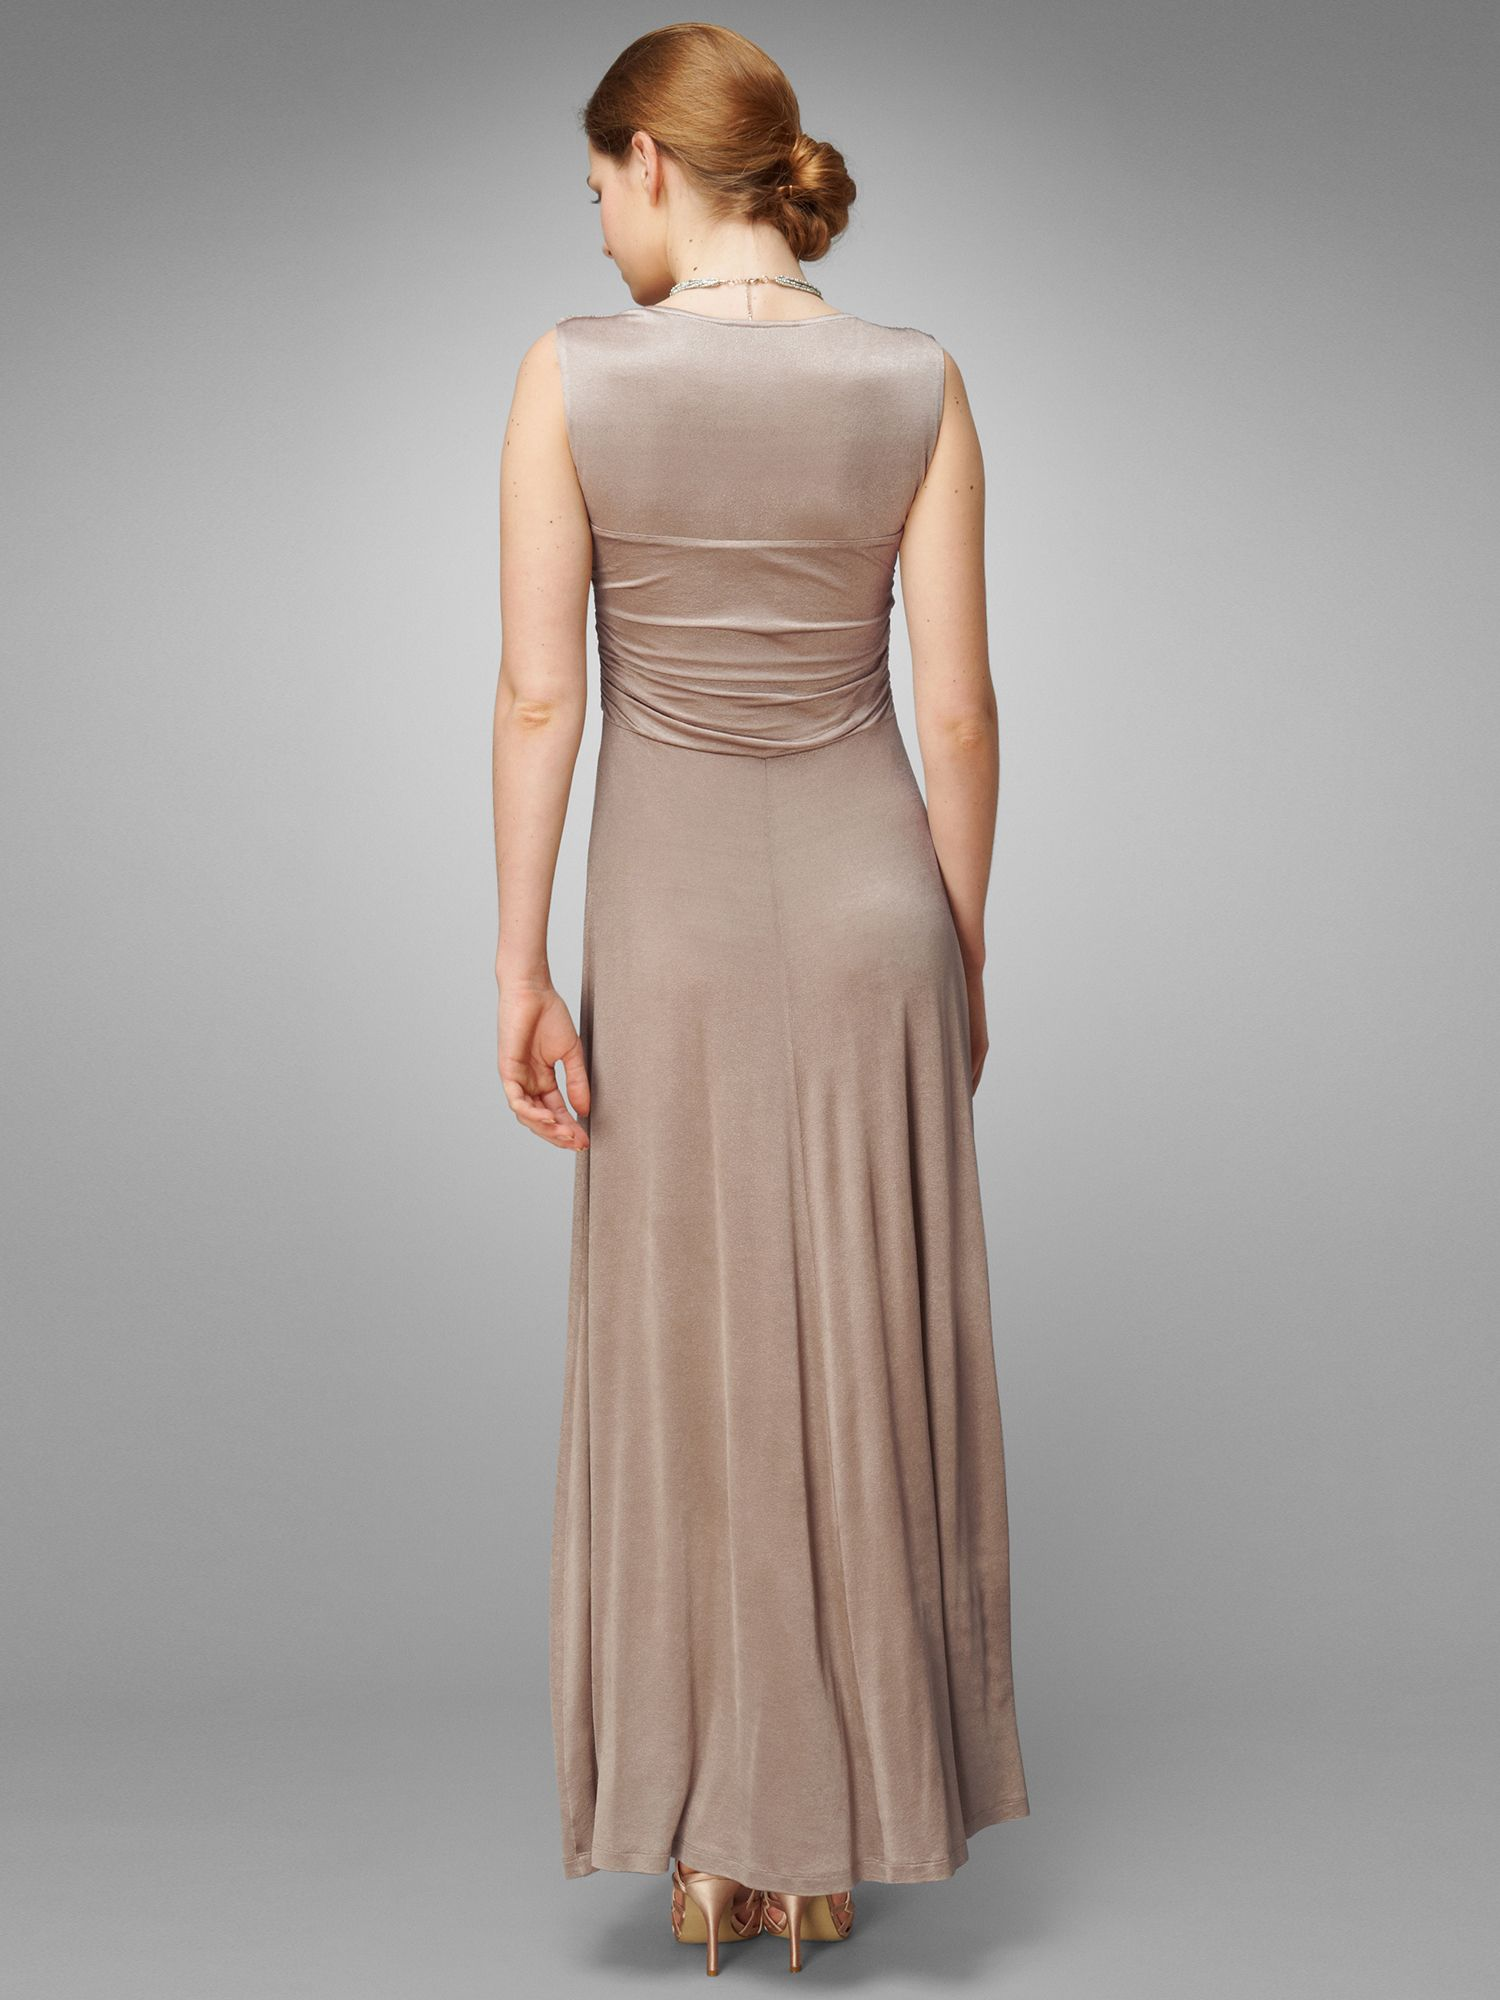 Opera full length dress